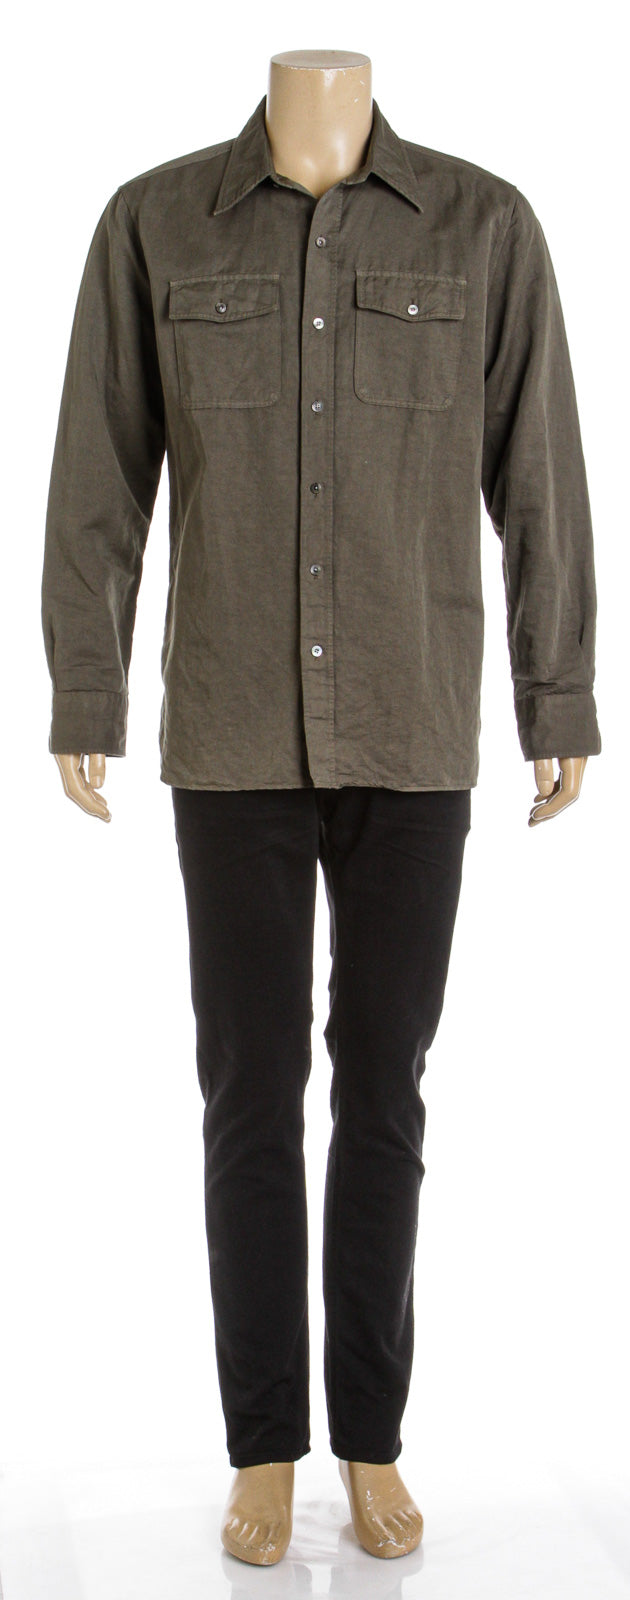 Tom Ford Military Twill Button-Up Long Sleeve Shirt (Size 44)